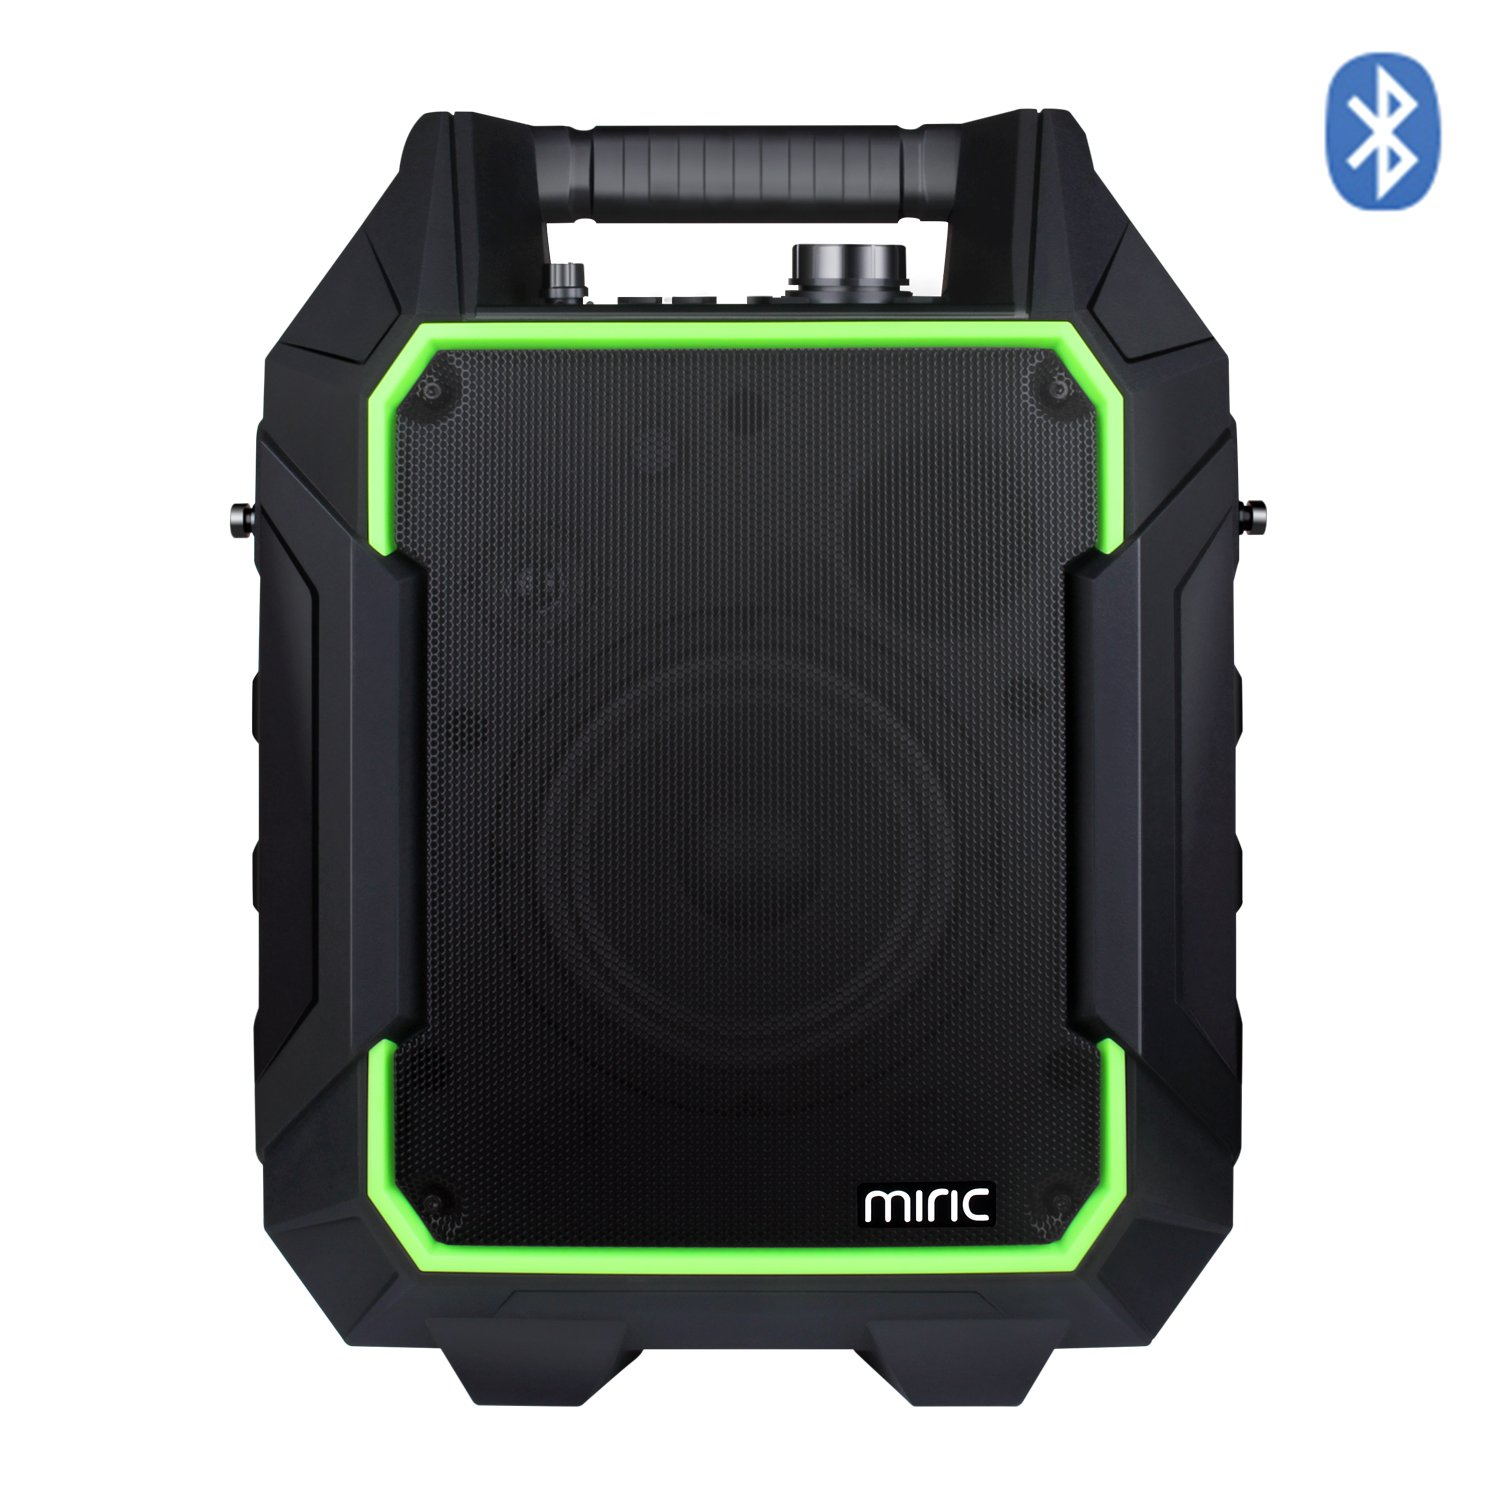 Miric Portable PA Speaker Bluetooth 60W, Outdoor Speaker 60 hours Playing Time with NFC / USB Charge Port / 3.5mm Interface / SD / FM Radio for Mic, Guitar, and Party, Gatherings, Dance, Rechargeable. by Miric